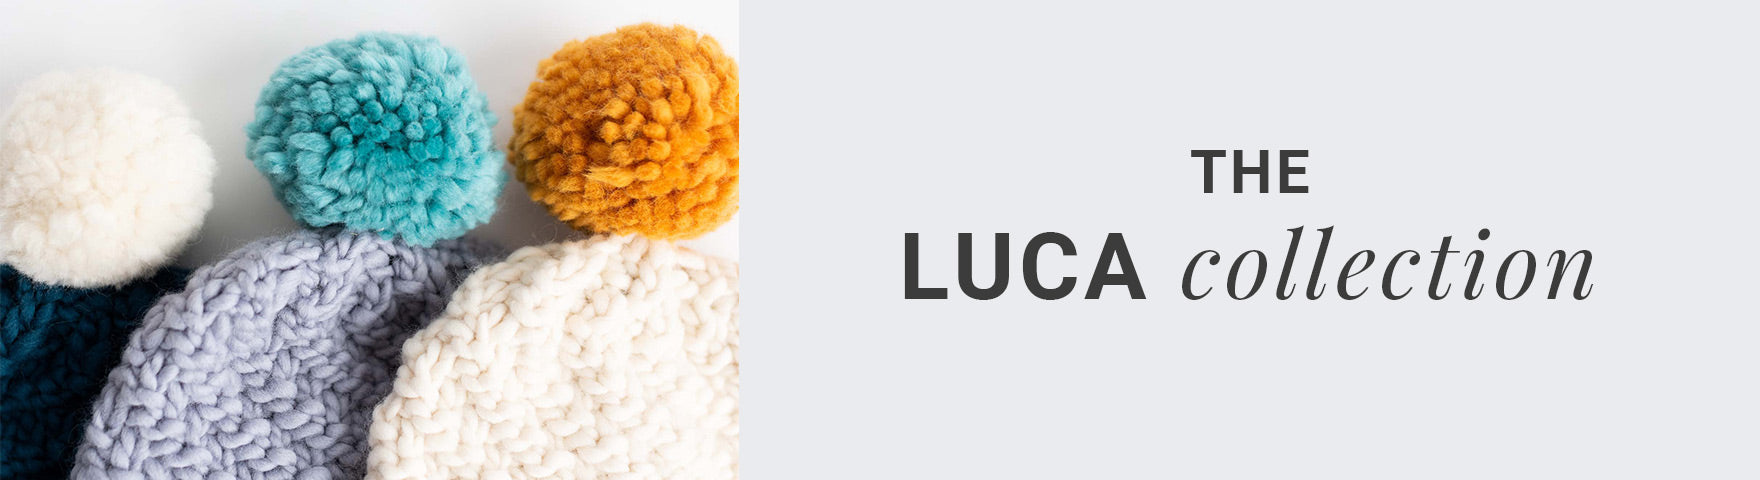 The Luca Collection